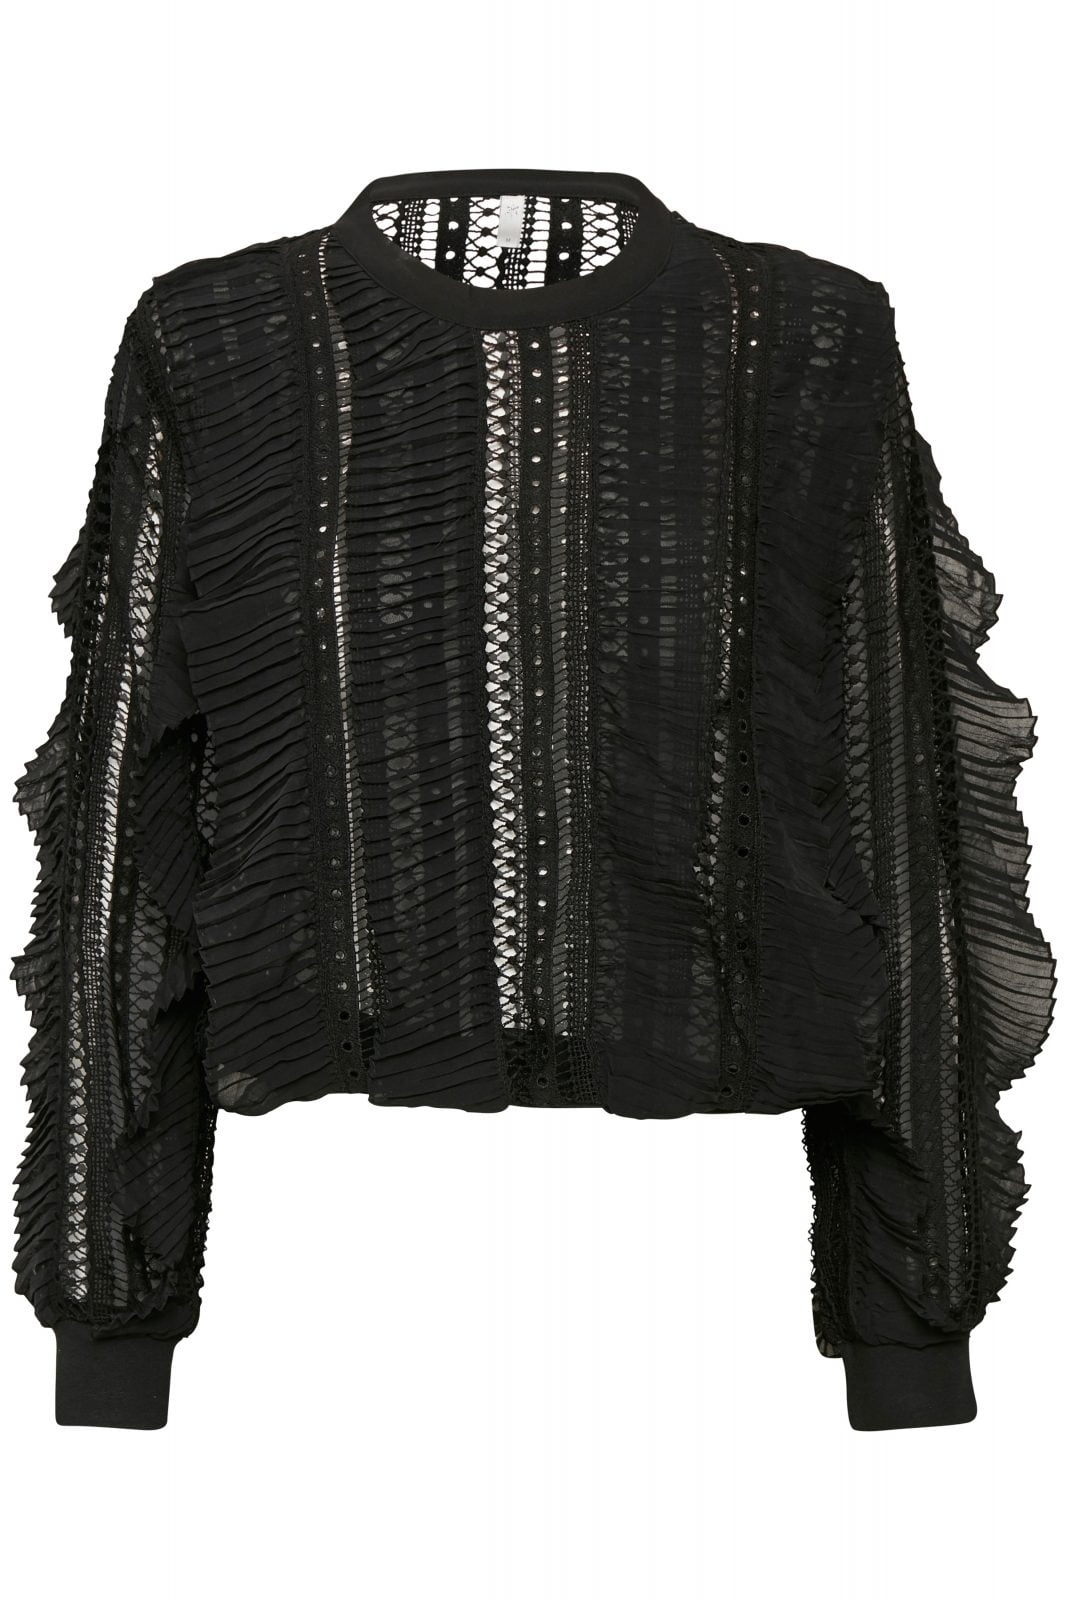 Image of   Corinne Blouse